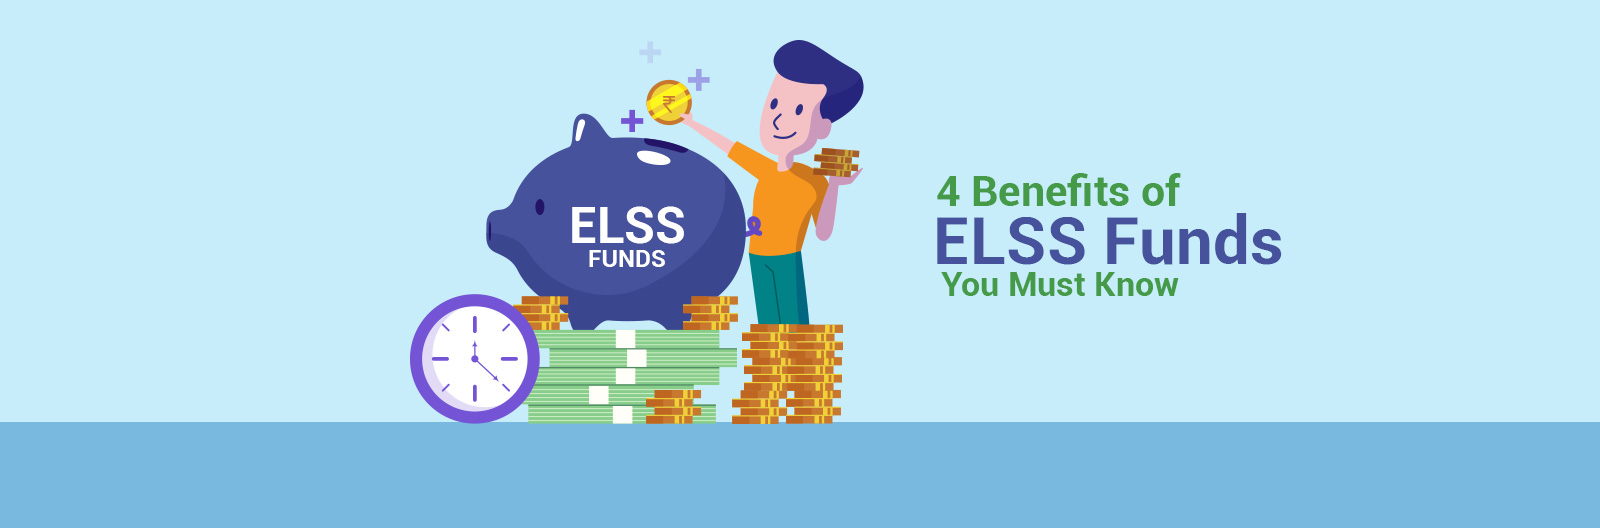 4 benefits of elss funds that are essential to keep in mind